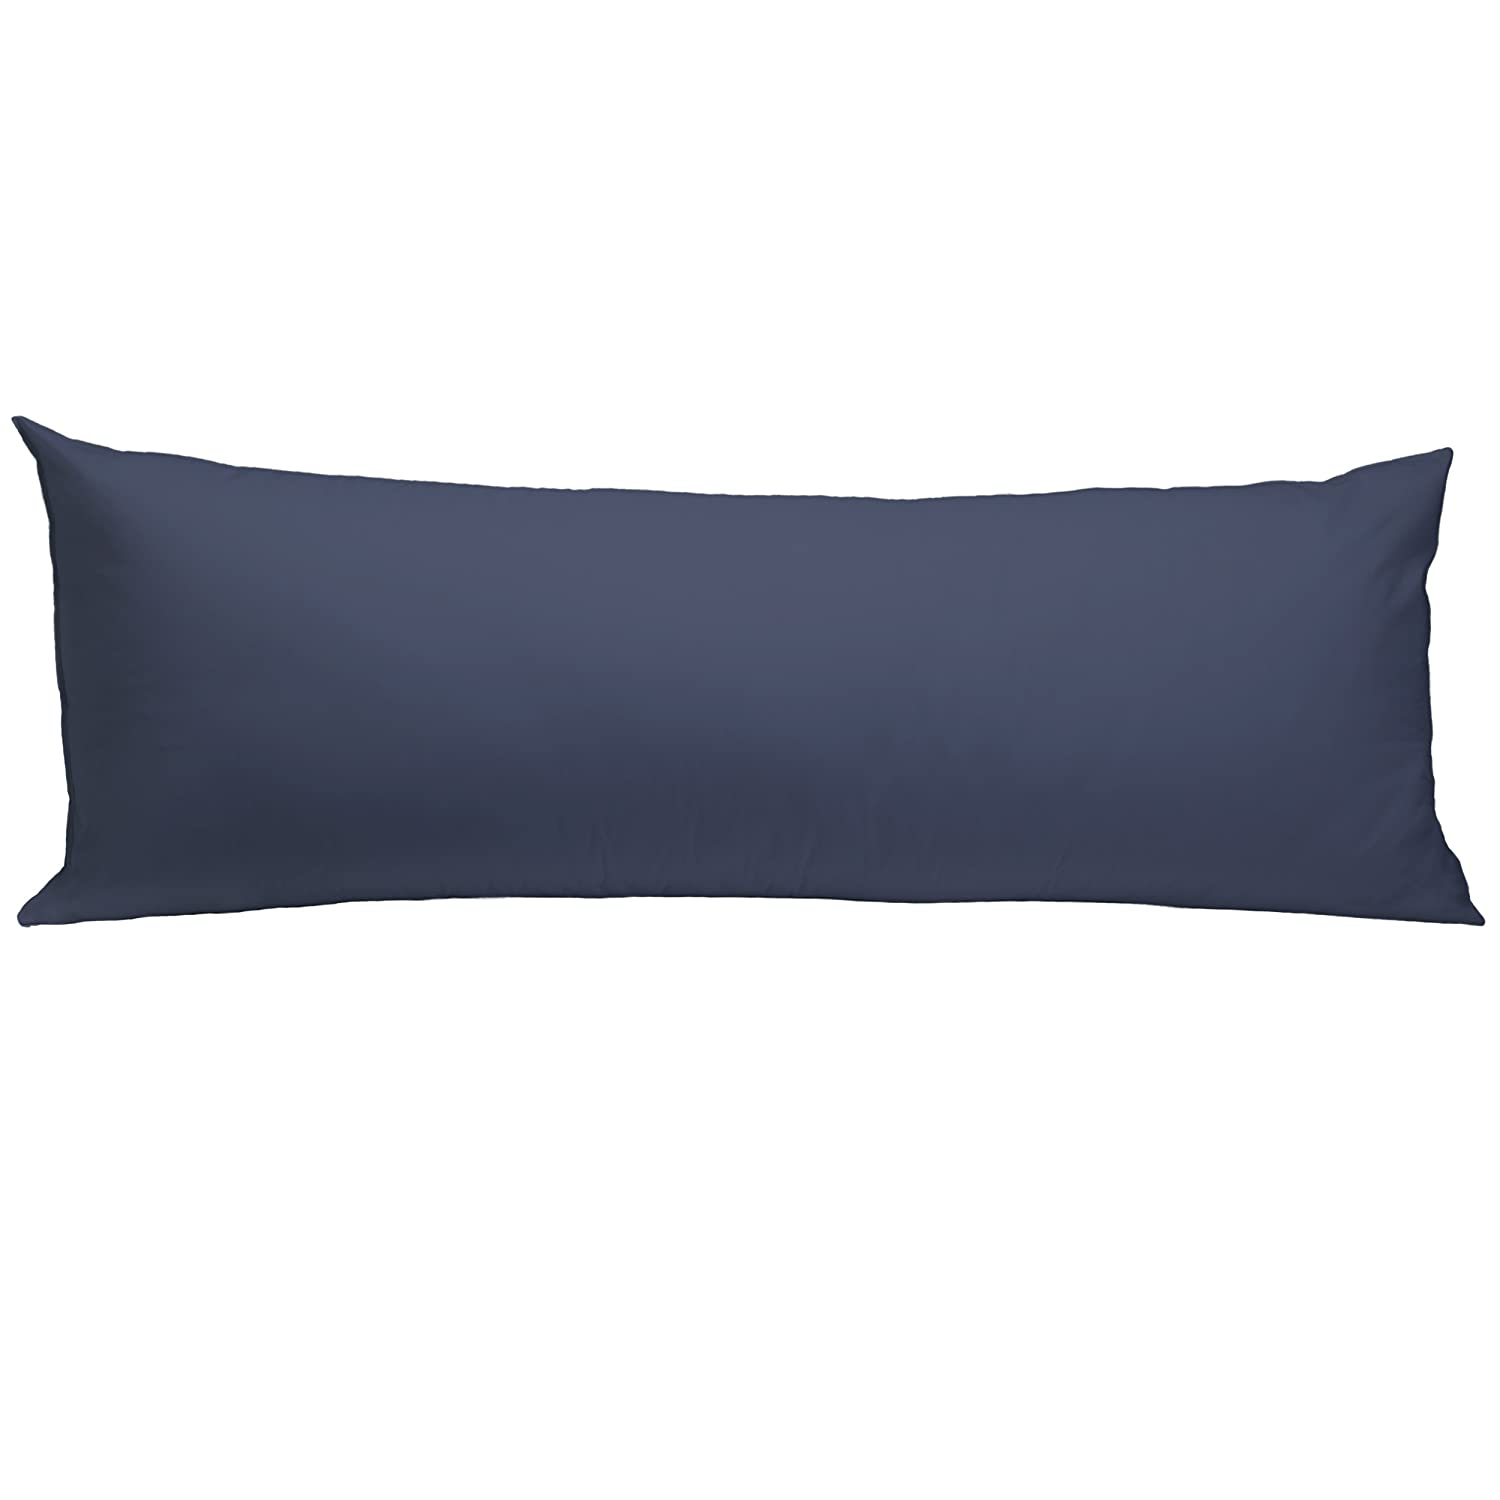 RestRight 100% Cotton Body Pillow Protector, 20 x 54 - Navy American Textile 96666